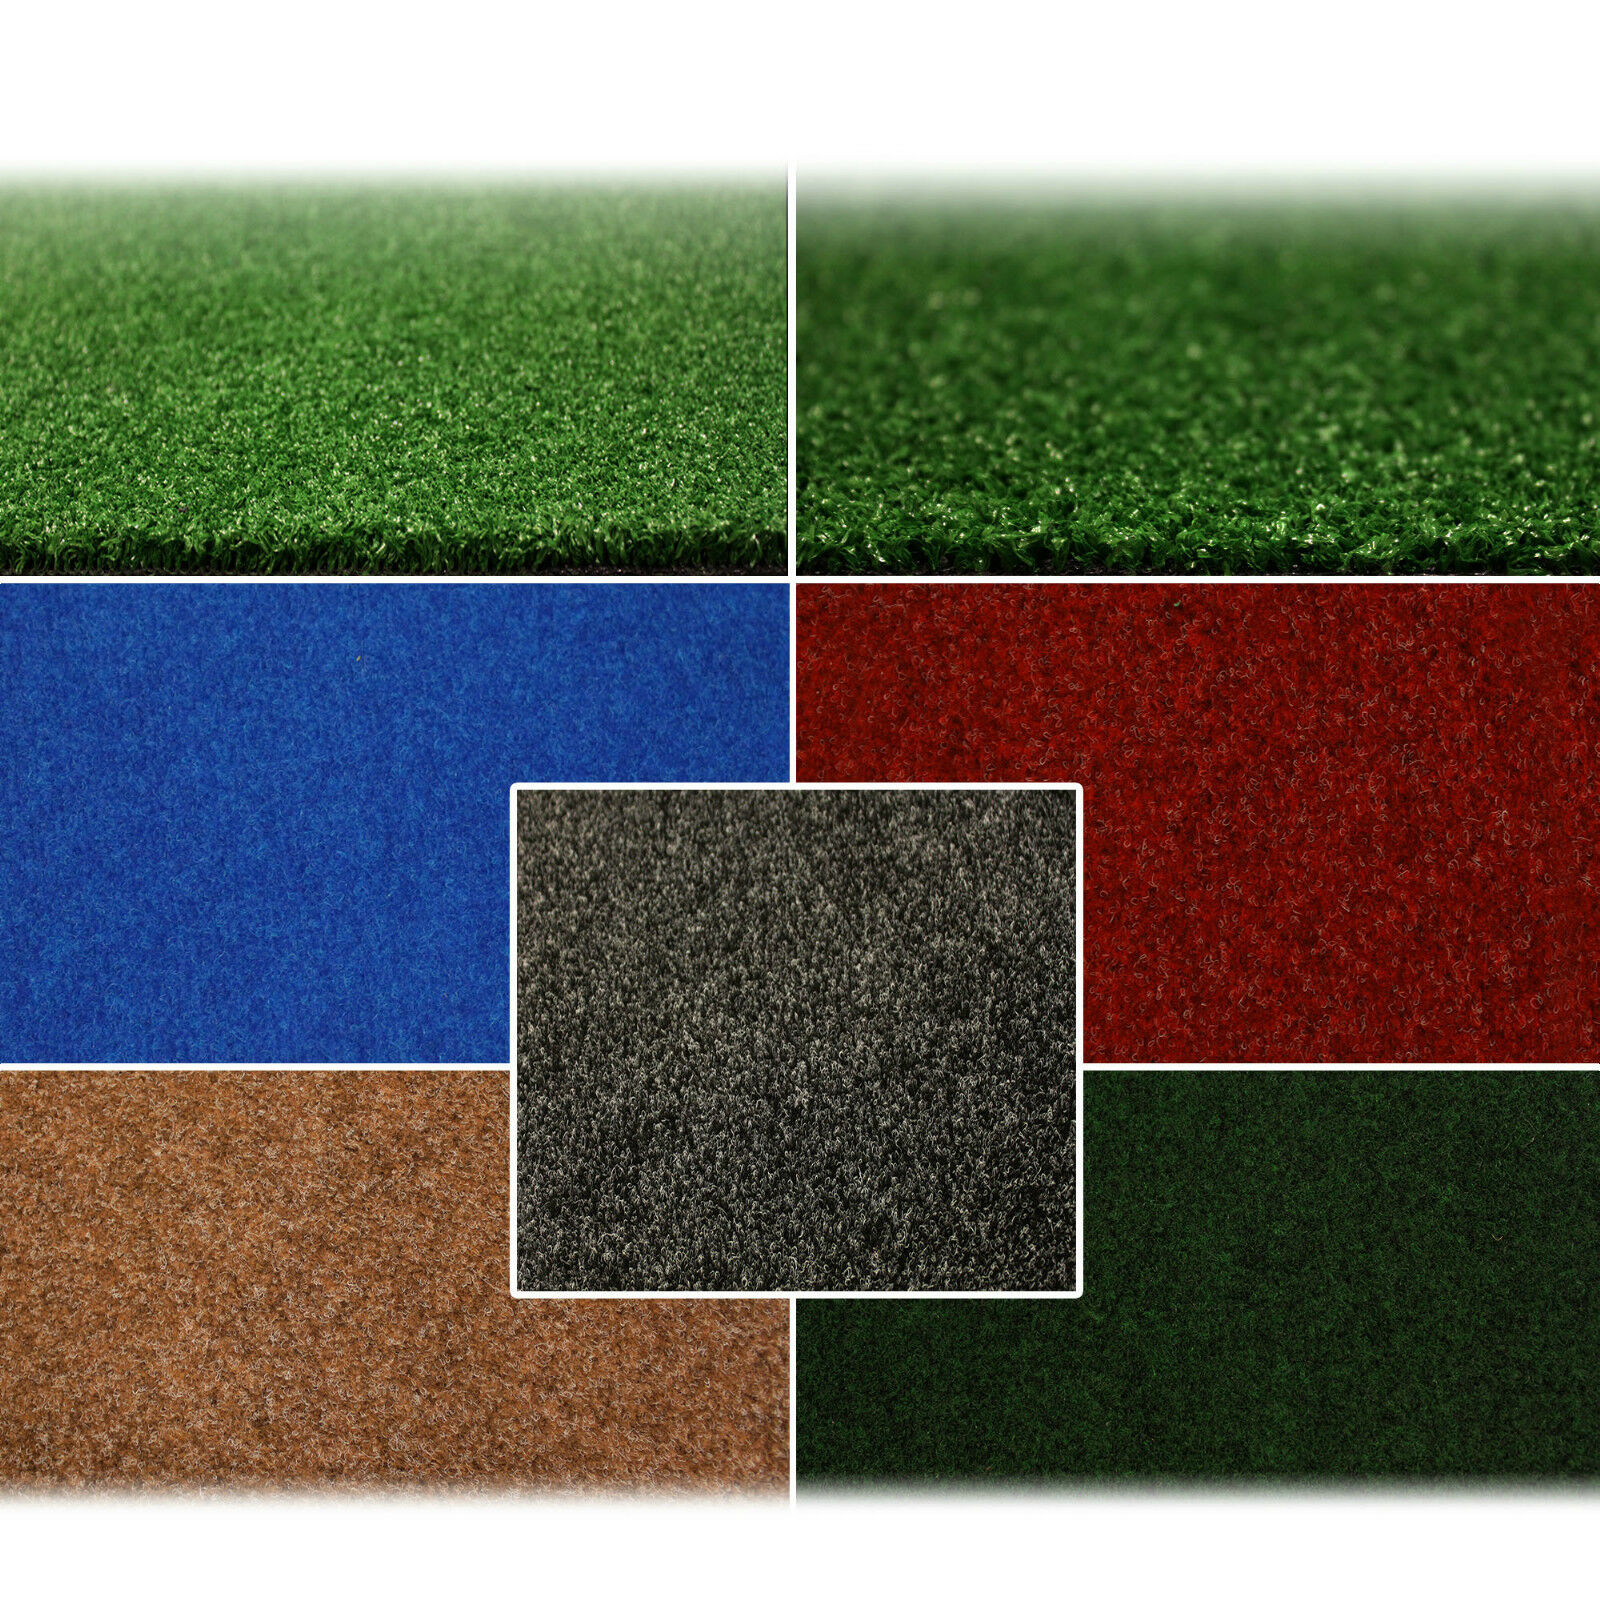 Outdoor Flooring Artificial Grass Carpet Green Blue Cheap Rolls 2